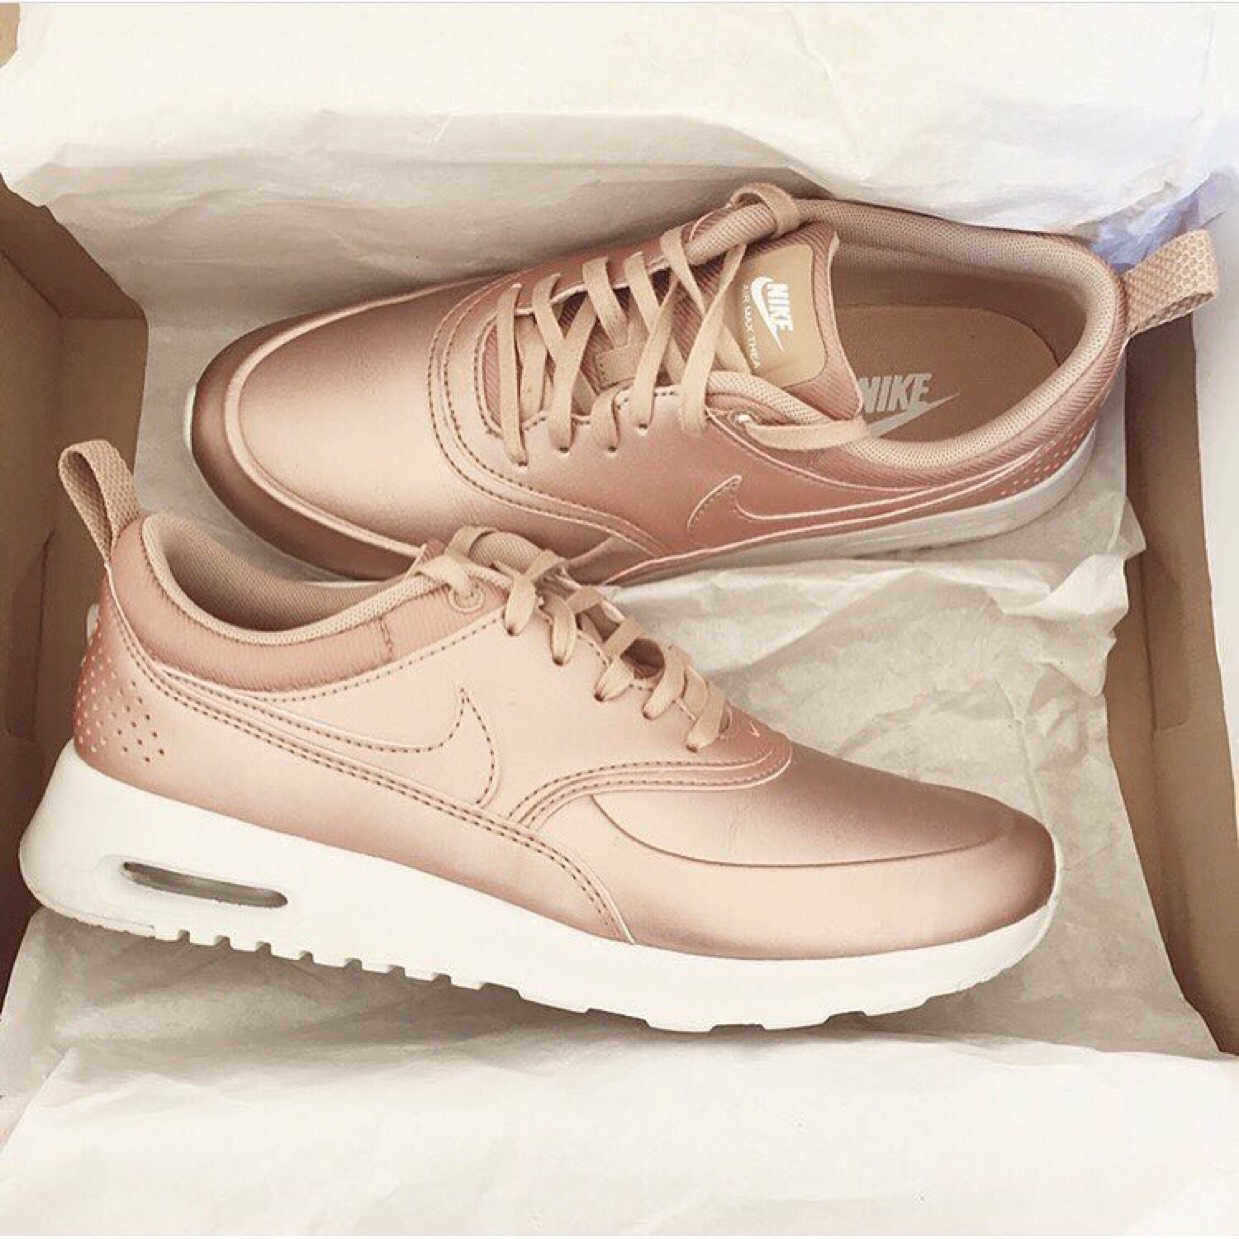 uk availability fff75 f2a91 Jiaminnie has gotten nike air max thea in rose gold from Japan!